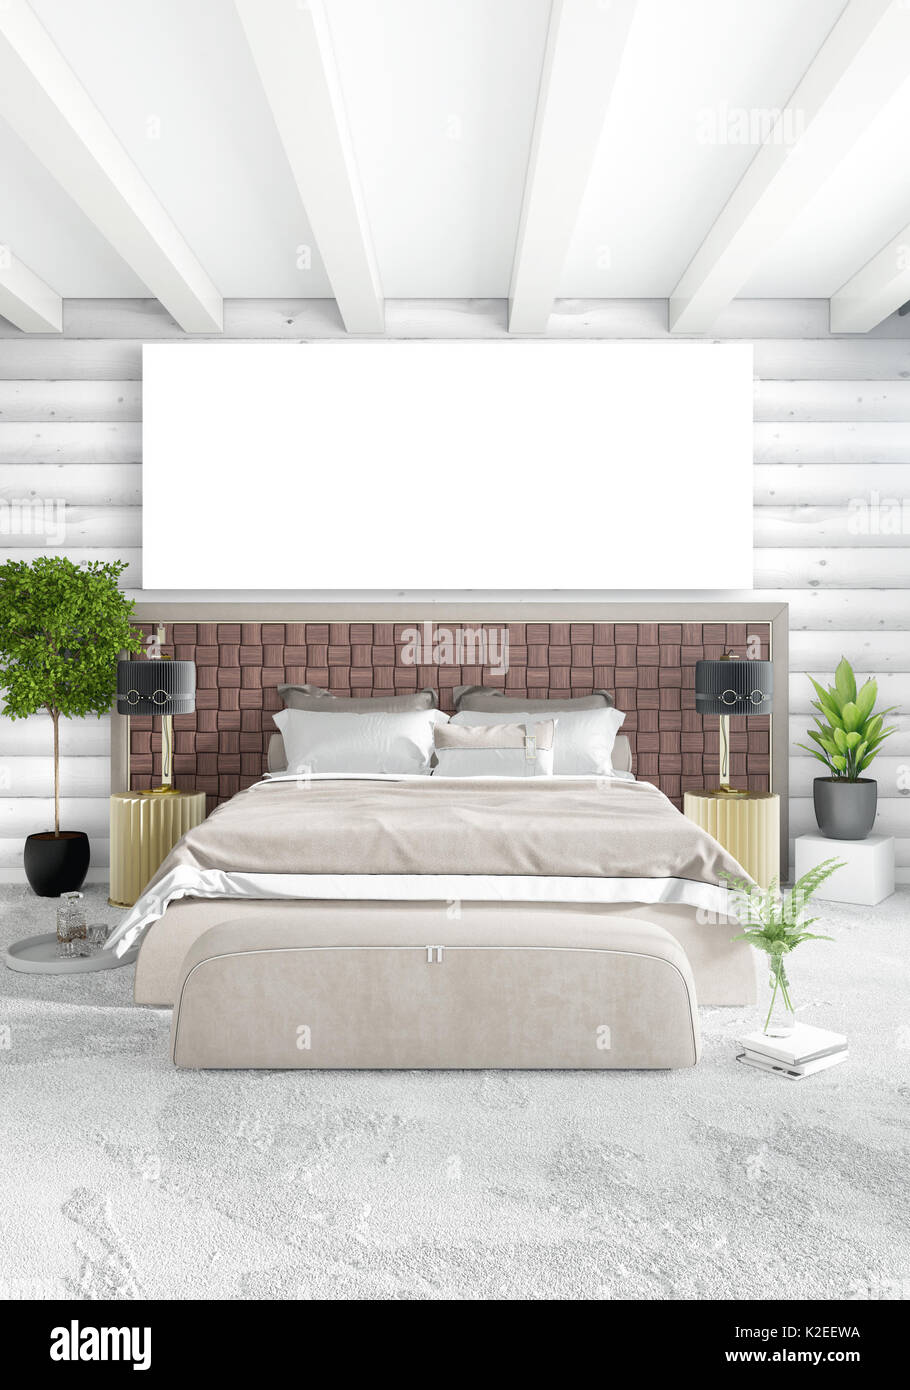 White Bedroom Minimal Modern Or Loft Style Interior Design With Wood Stock Photo Alamy